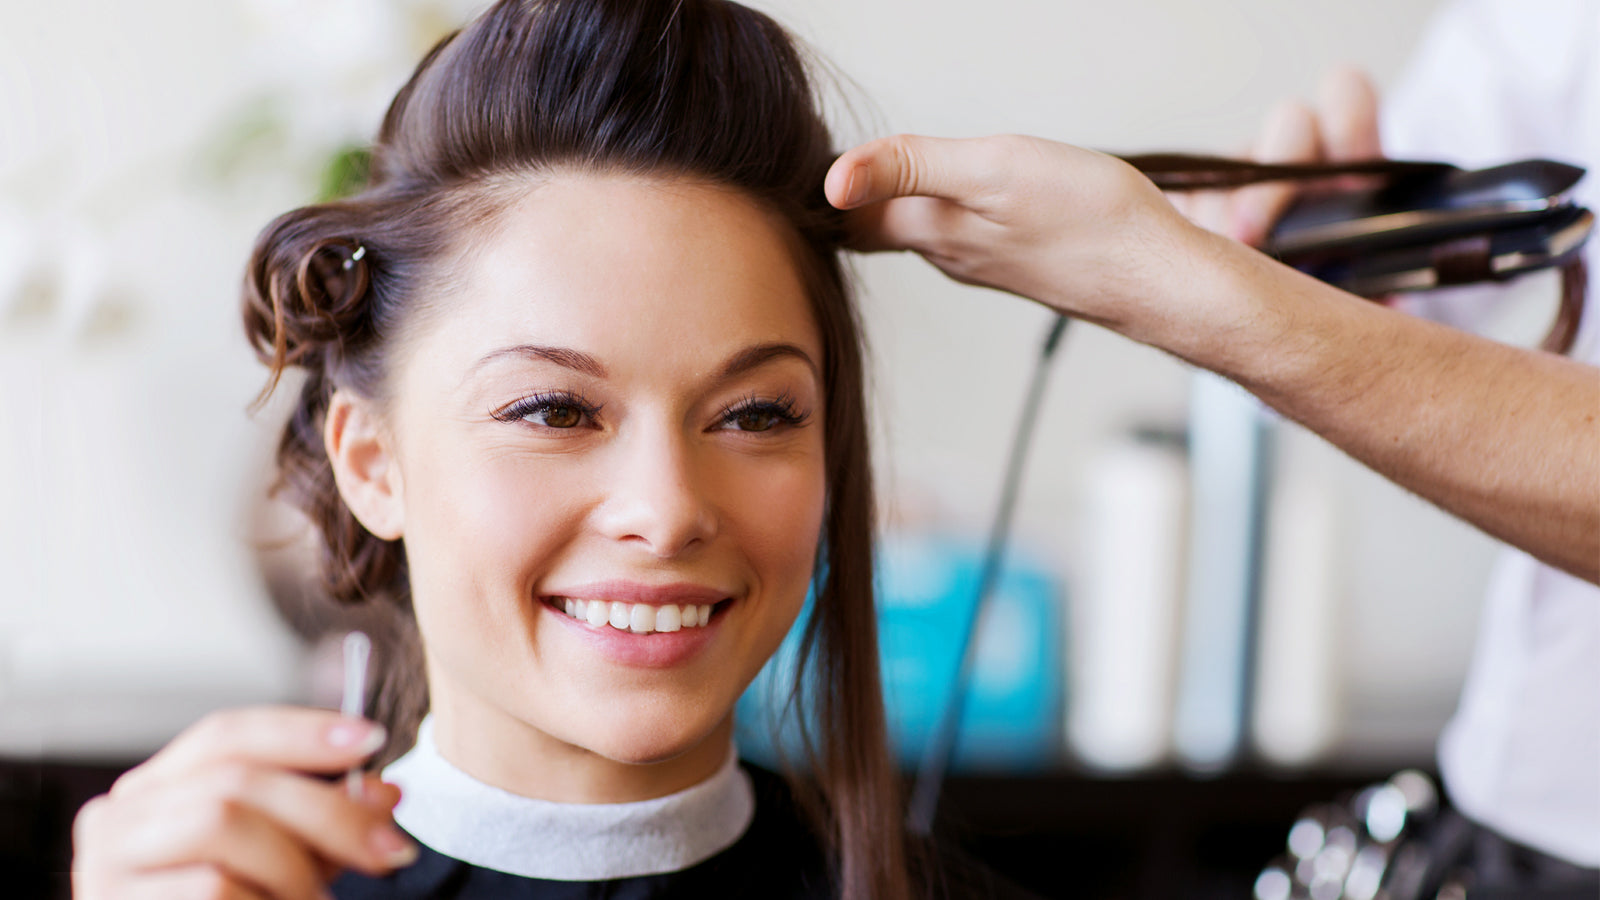 Planning a visit to your hairdresser? Here's how to prep your hair for it